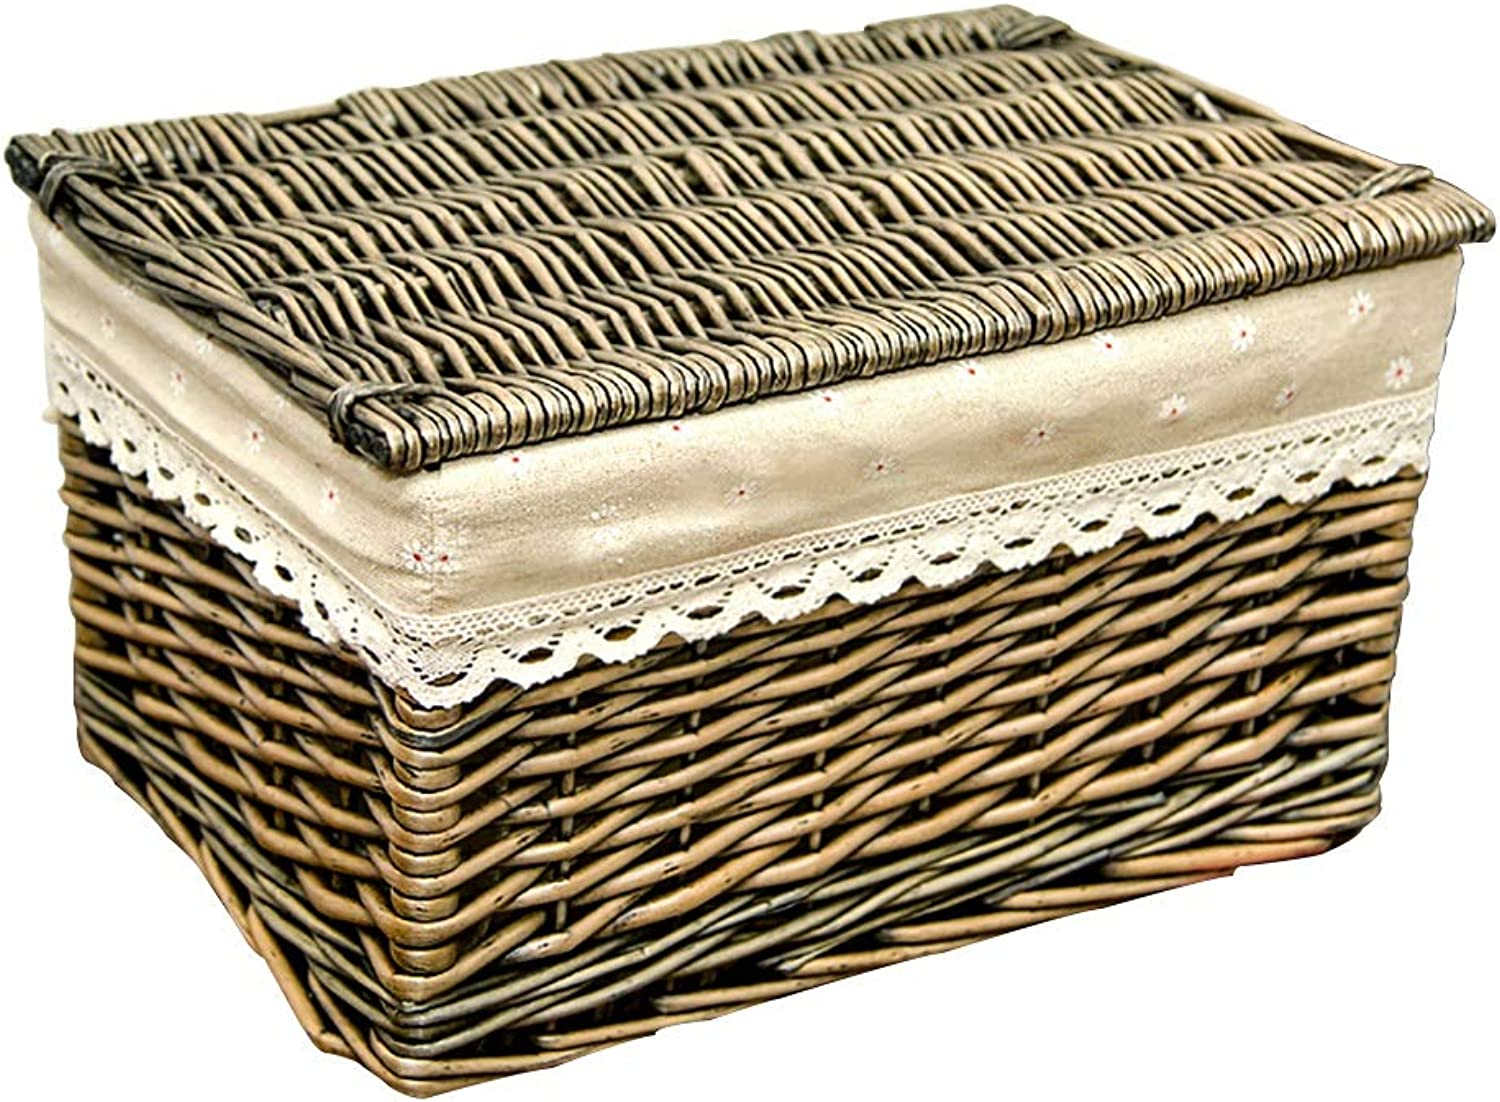 FANGFA Storage Baskets Wicker Hand Weaving Bedroom Clothes Toy Storage Box with lid (2 Sizes are Optional) (Size   LWH 37  26  21cm)